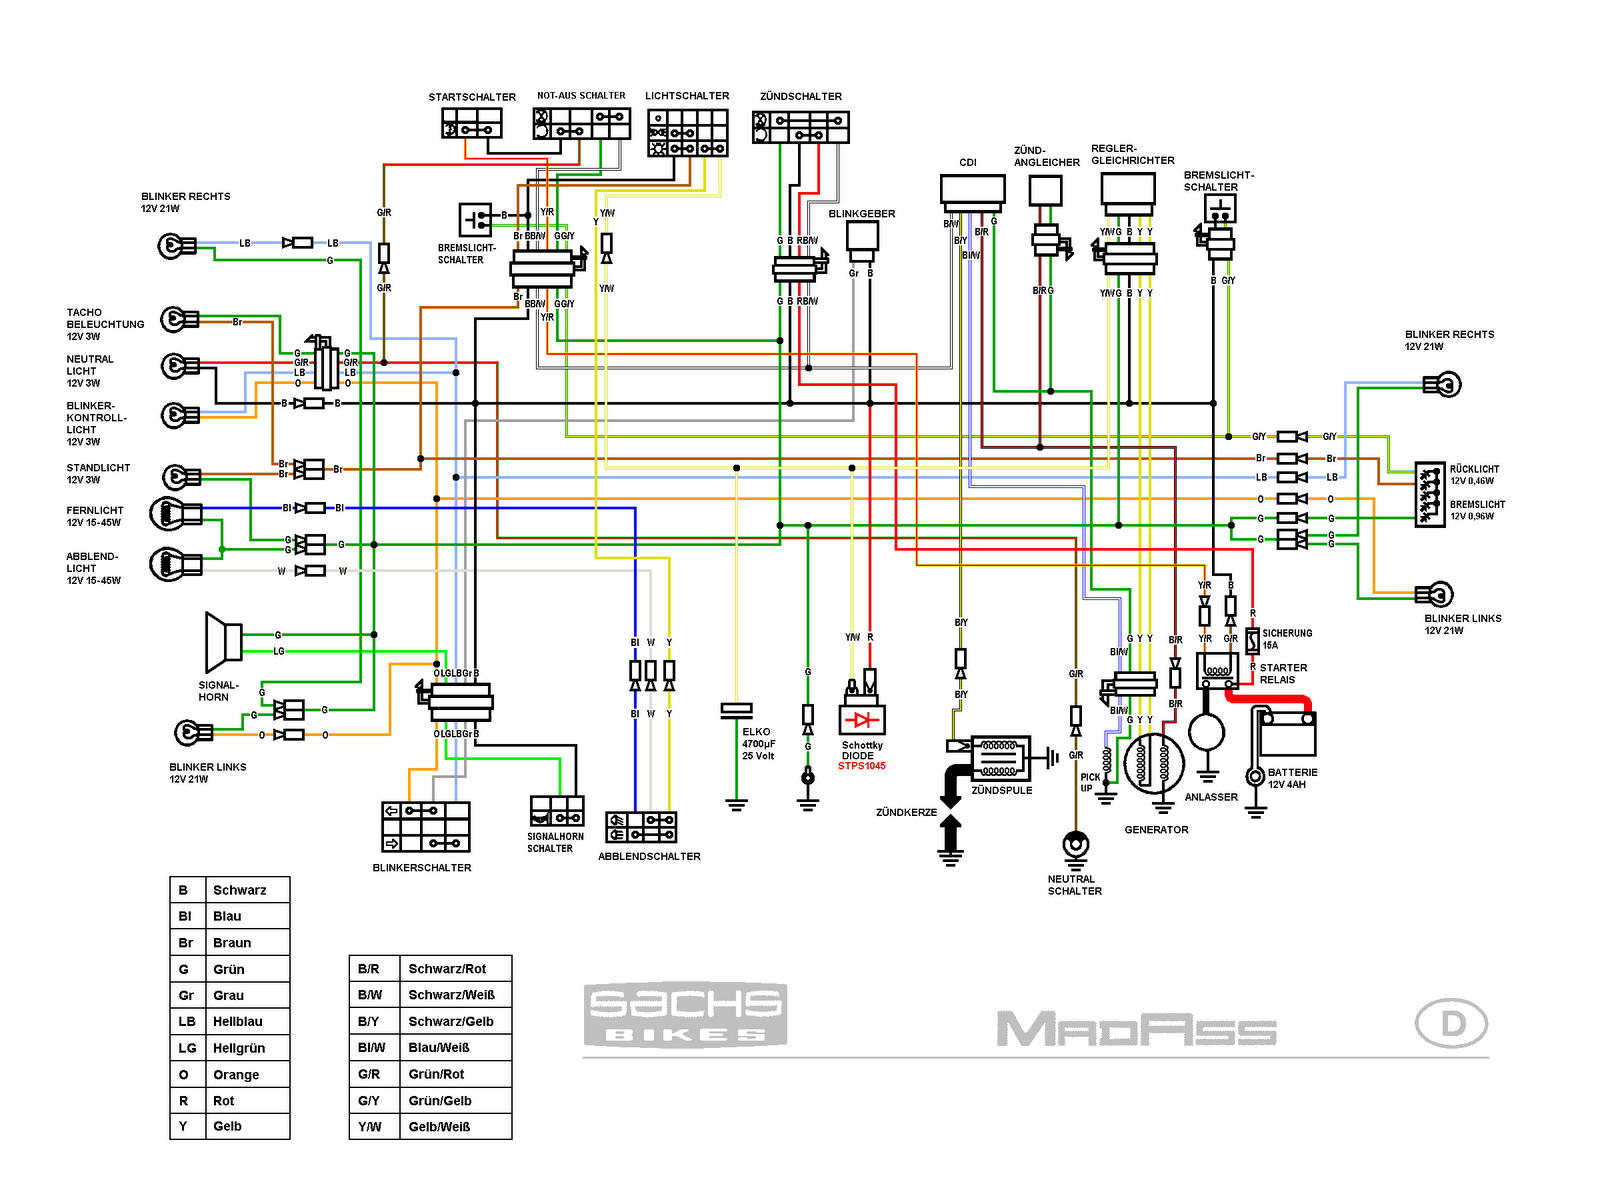 madass+wiring+with+schotky+diode?resize\=665%2C499 mio yamaha wiring diagram wiring diagrams  at readyjetset.co